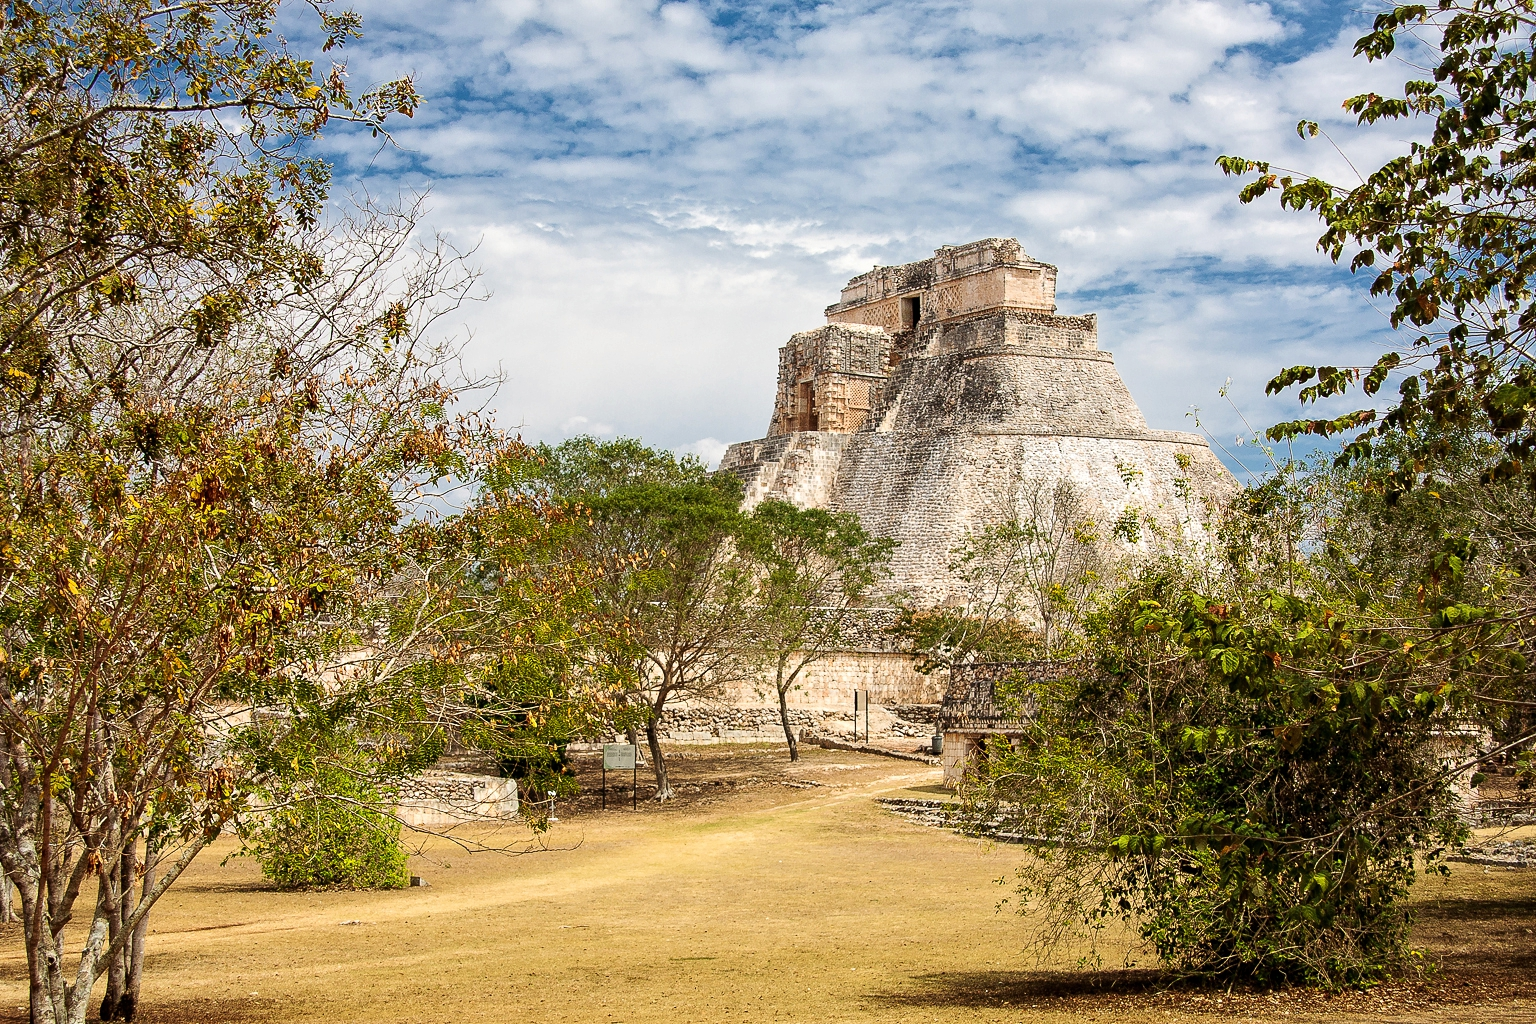 Pyramid of the Magician - Uxmal